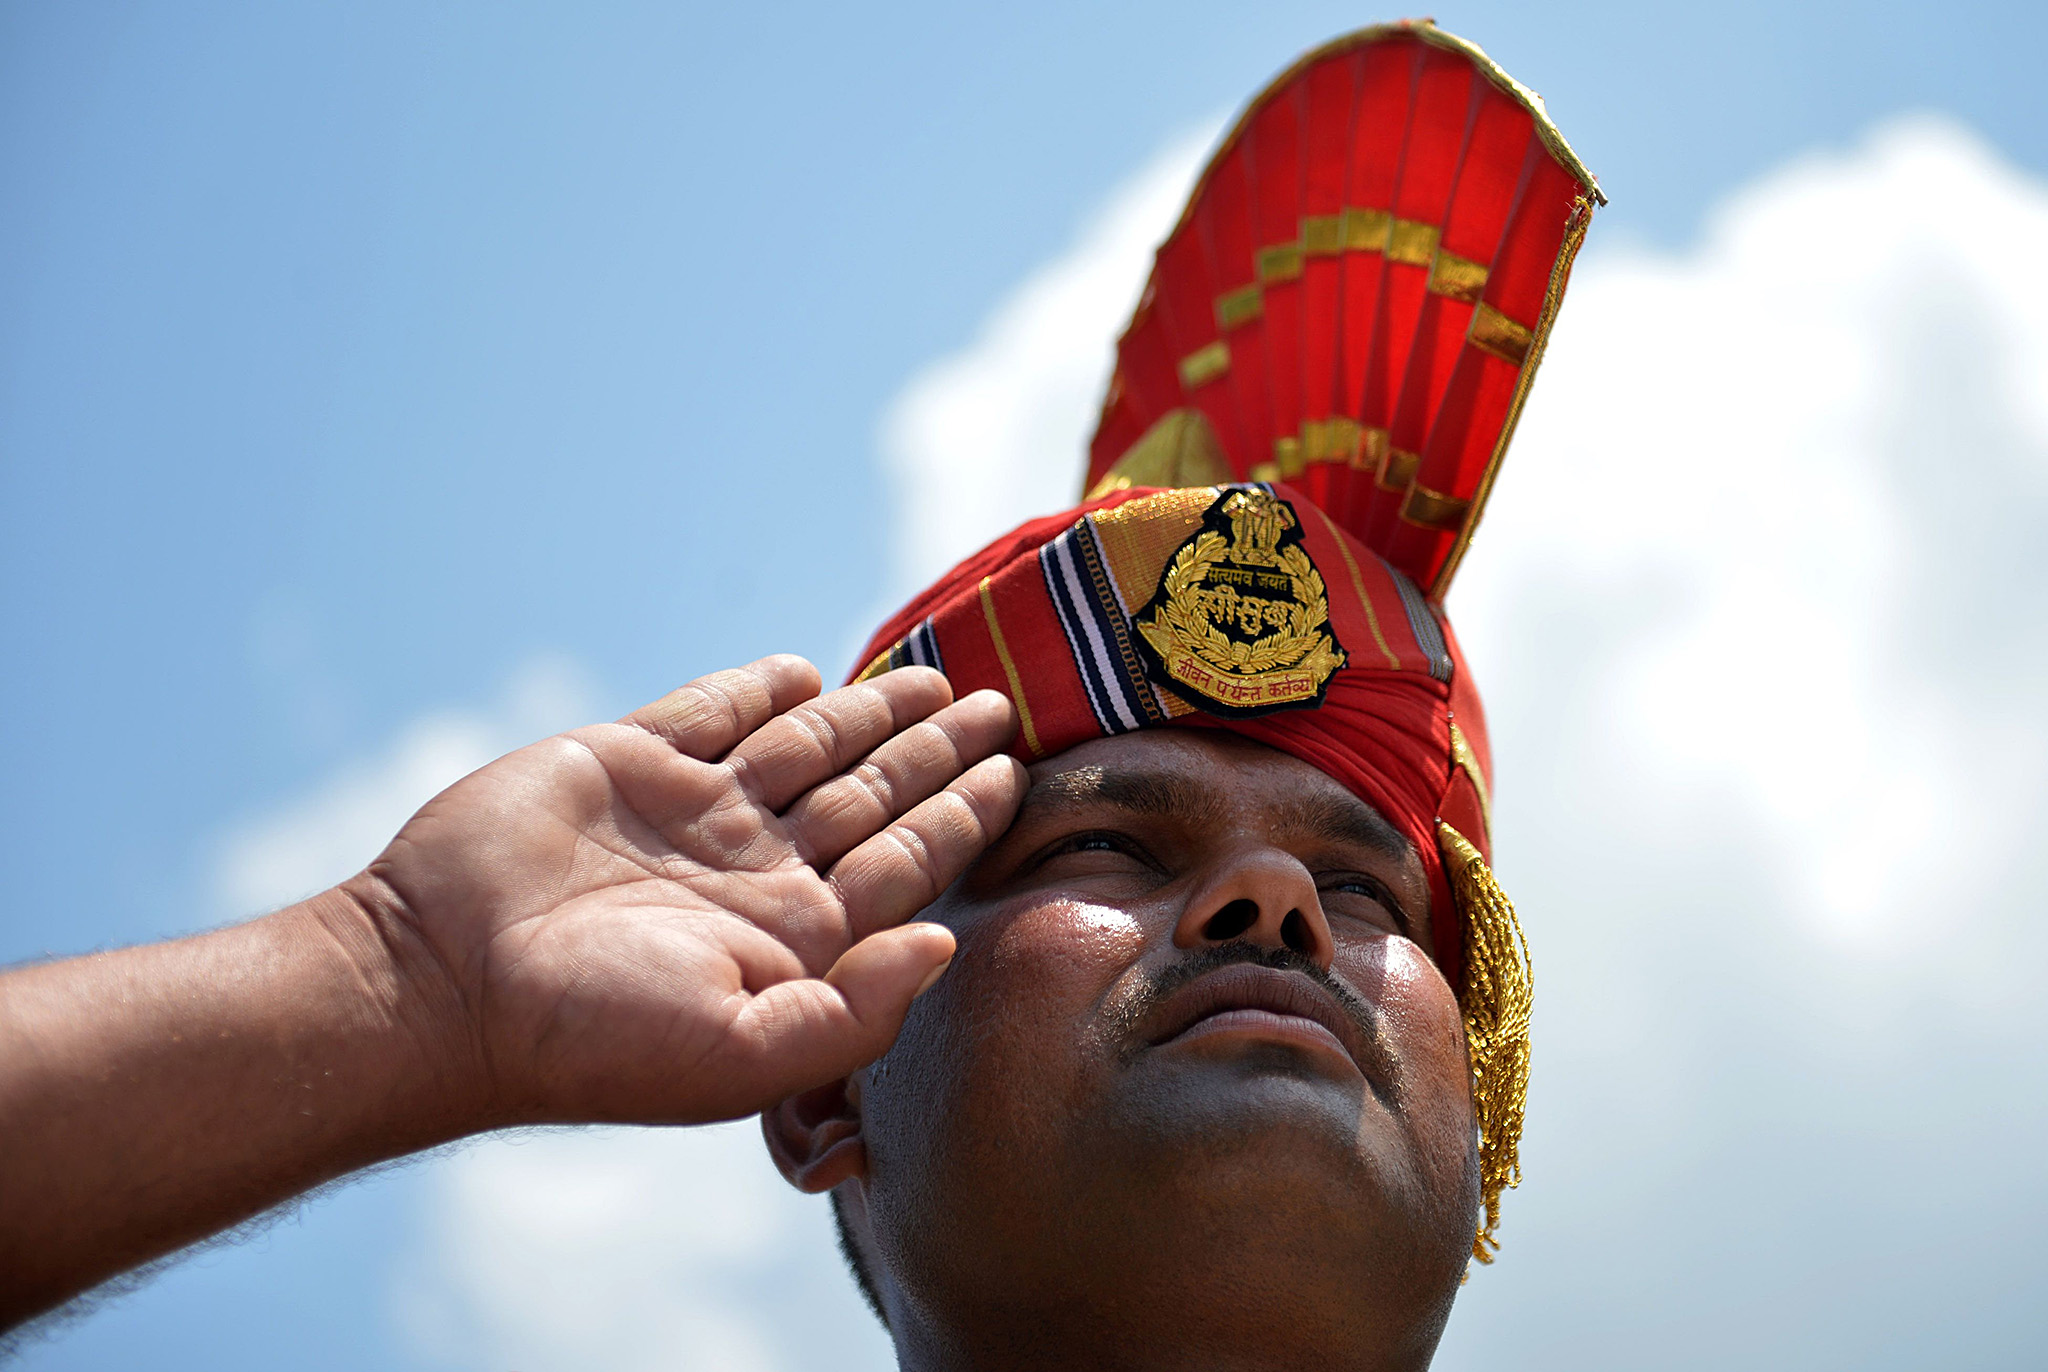 An Indian Border Security Force (BSF) soldier salutes near the coffins of three colleagues during a wreath-laying ceremony at BSF headquarters in Srinagar on August 9, 2016. At least three BSF soldiers and one suspected militant were killed in a gunfight close to the Line of Control in north Kashmirs Kupwara district on August 8. / AFP PHOTO / TAUSEEF MUSTAFATAUSEEF MUSTAFA/AFP/Getty Images